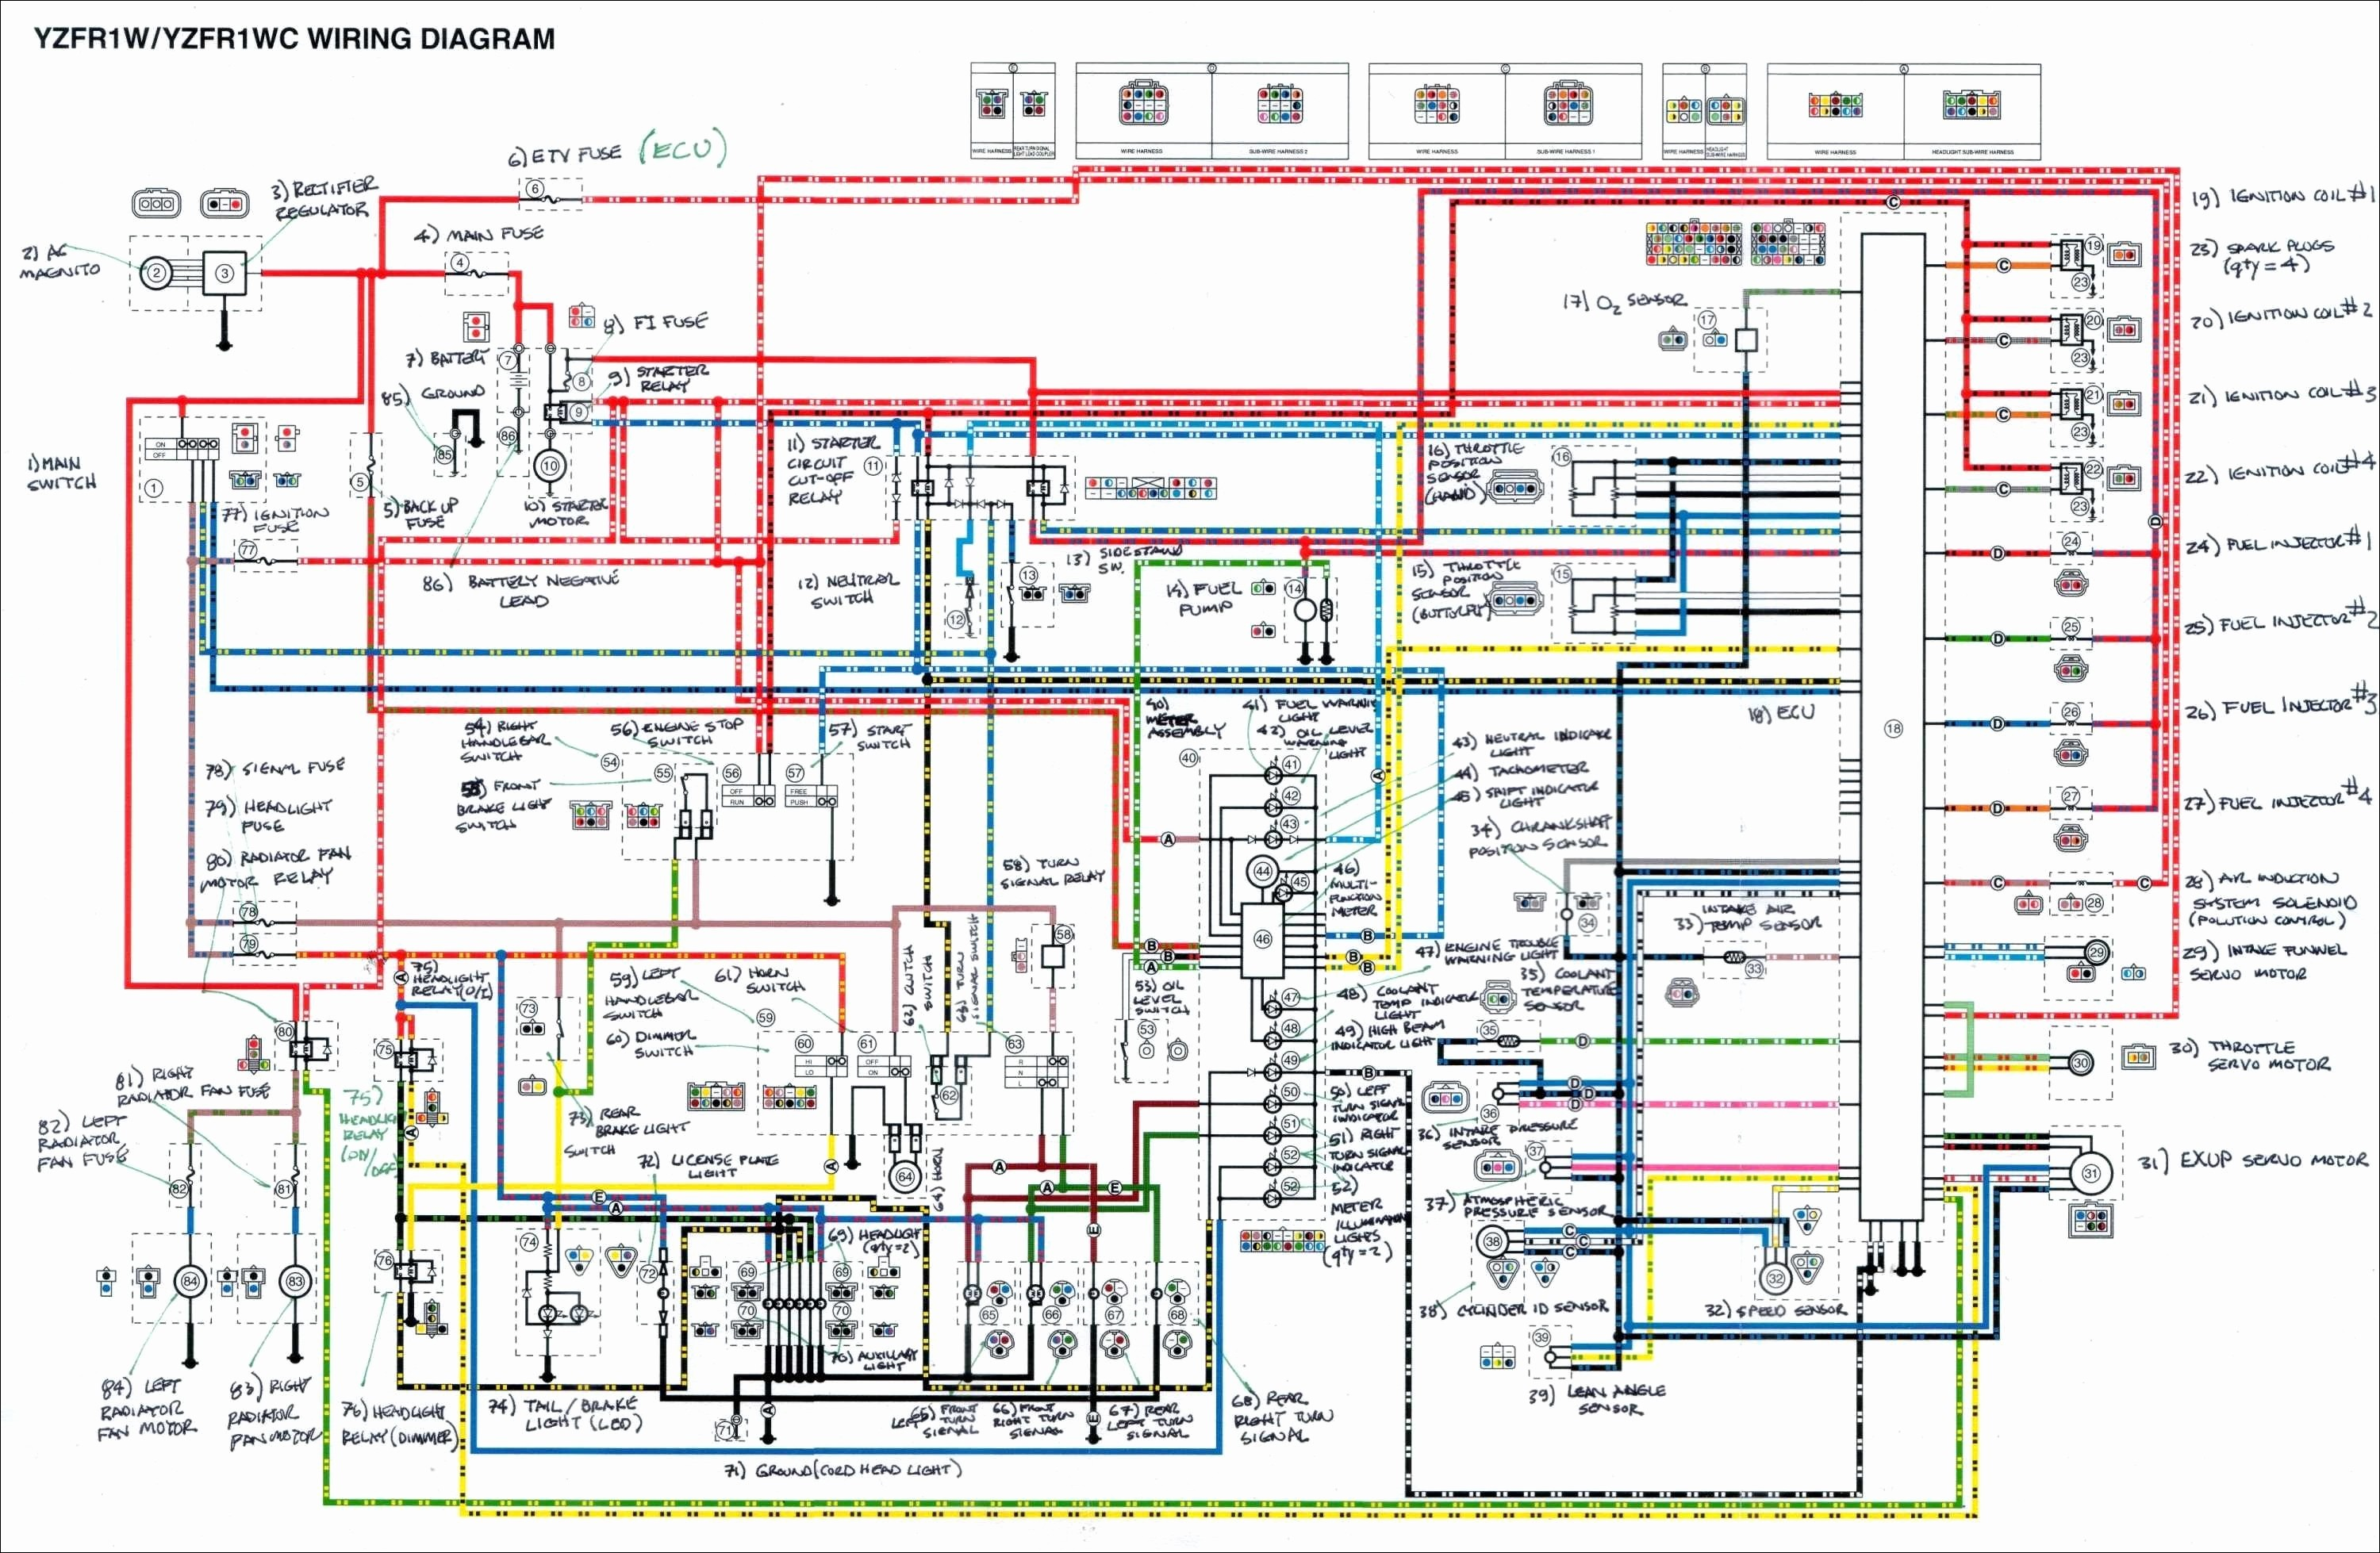 yamaha atv wiring diagram for starters zb 6555  yamaha raptor 250 atv wiring schematics wiring diagram  yamaha raptor 250 atv wiring schematics